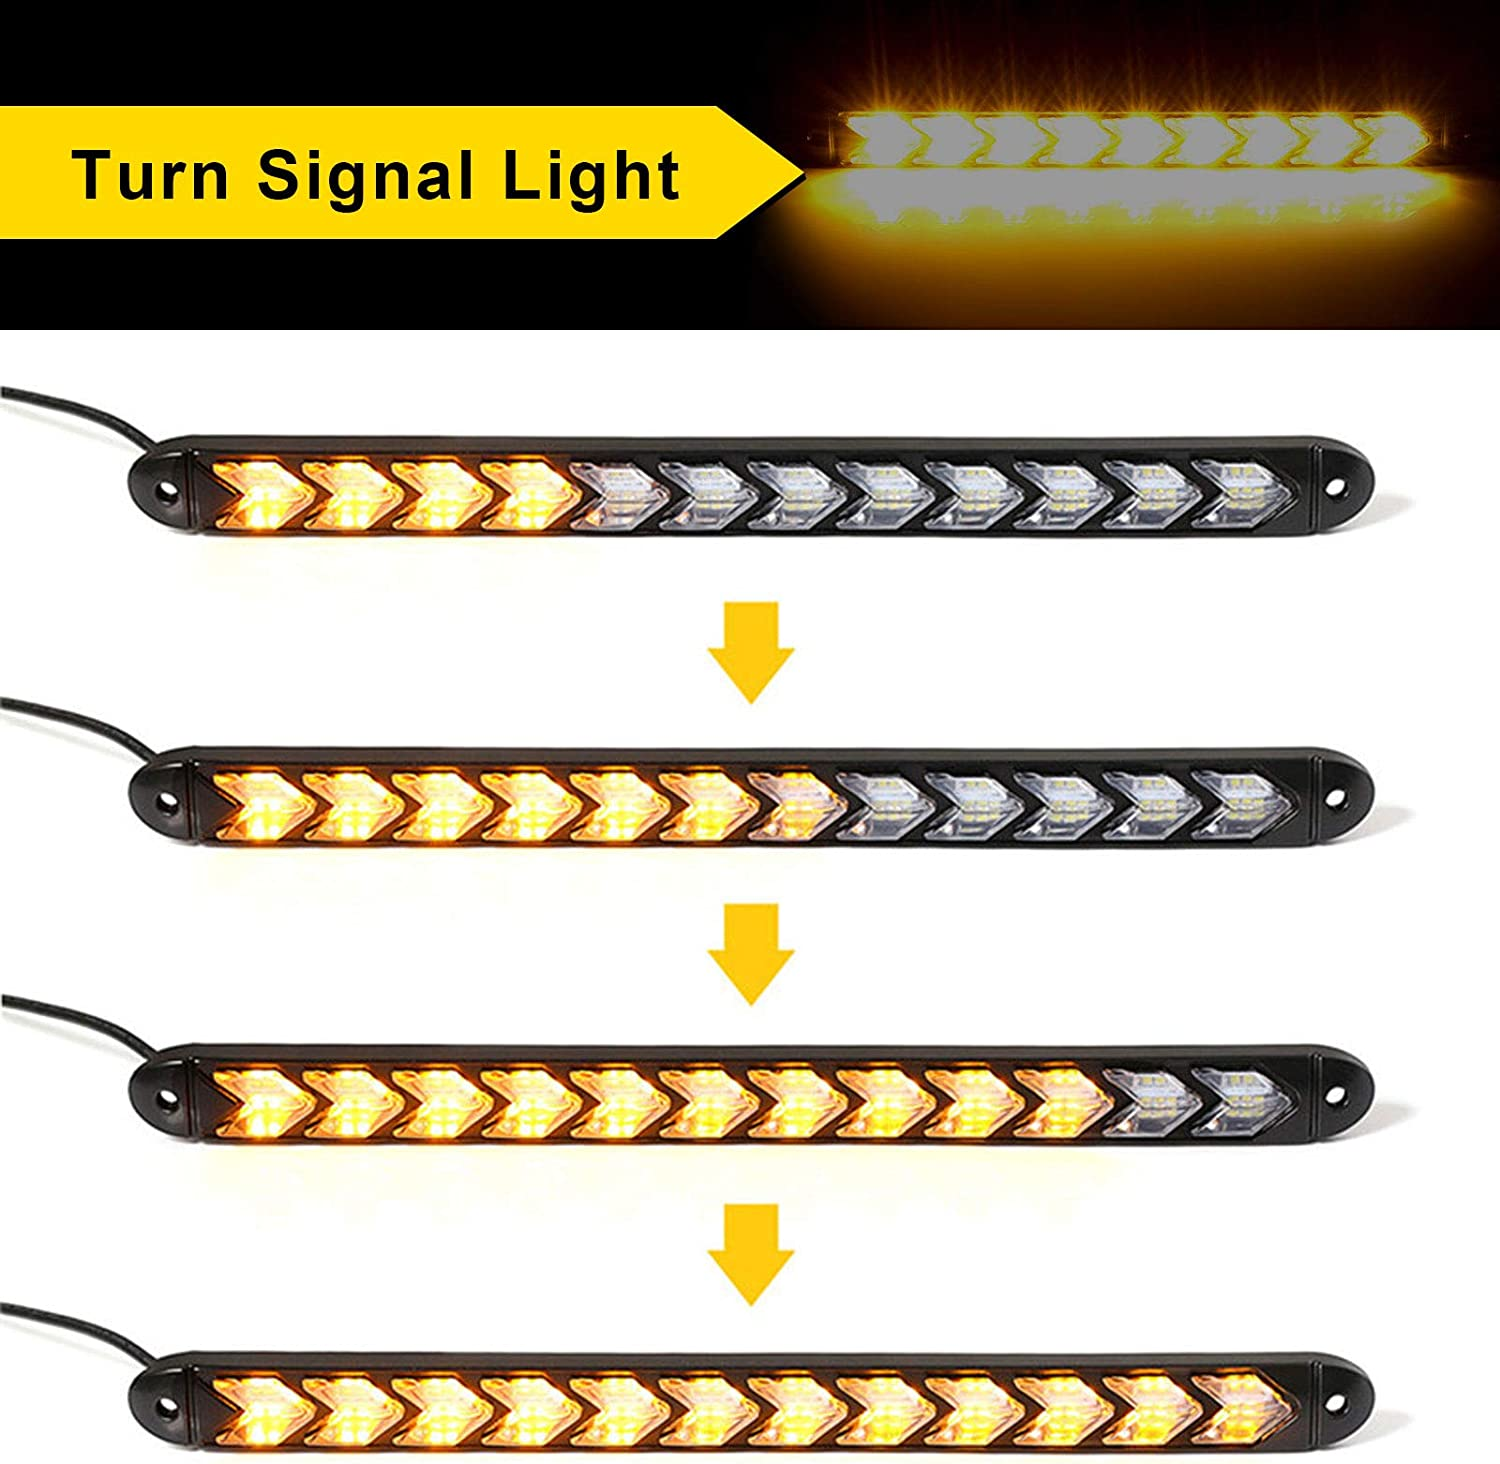 Amber DRL Strip Switchback Flexible Flowing LED Lights 6000K//3000K Daytime running light Water Resistant Runs daylight Turn Signal Head Light 2pcs 9led 25cm//9.84inch Dual Color White//Yellow